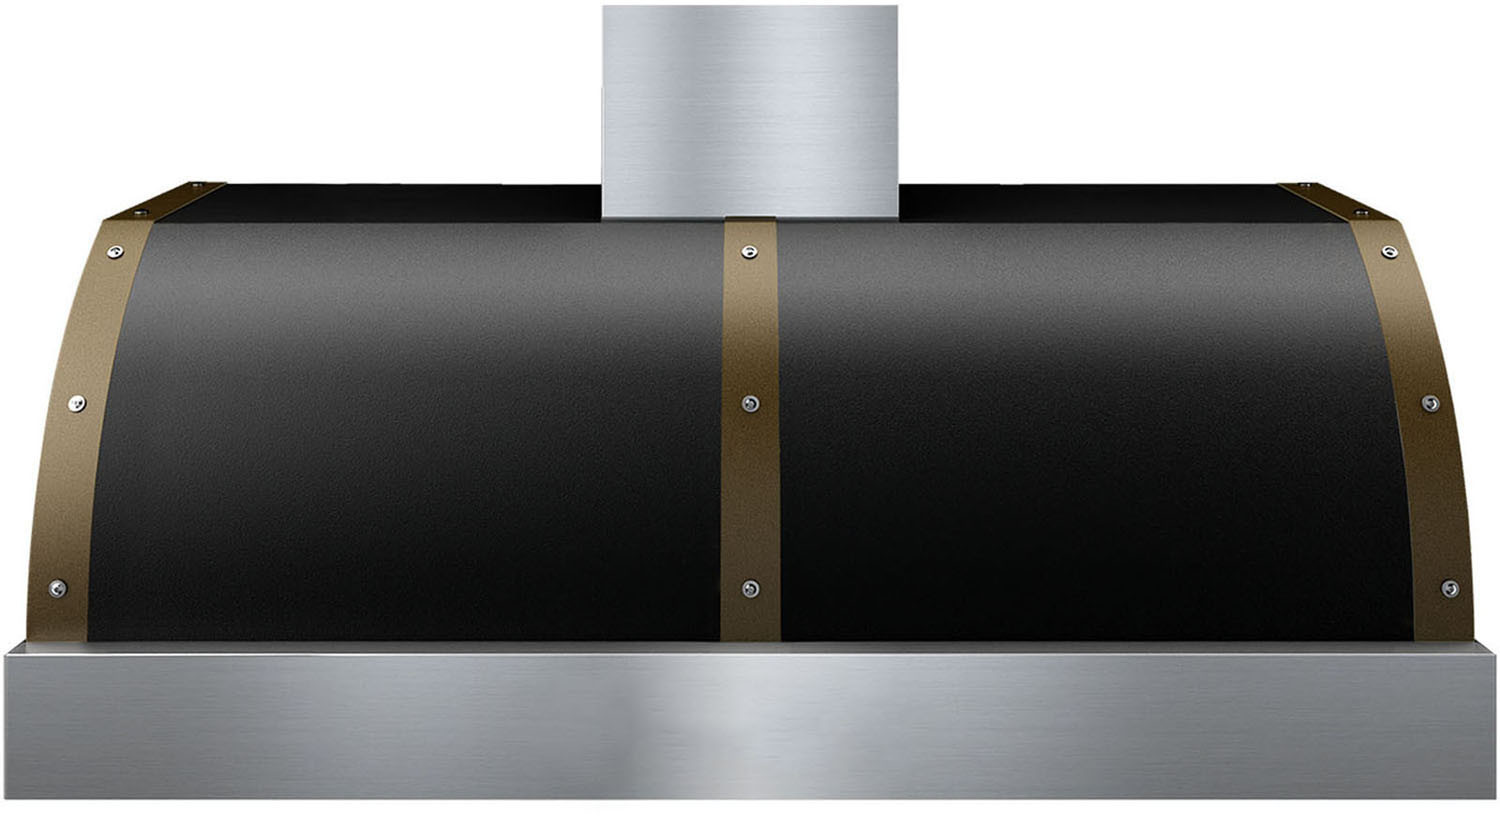 Undermount Rangehood Reviews Superiore Hd481btnb 48 Inch Wall Mount Or Undermount Hood